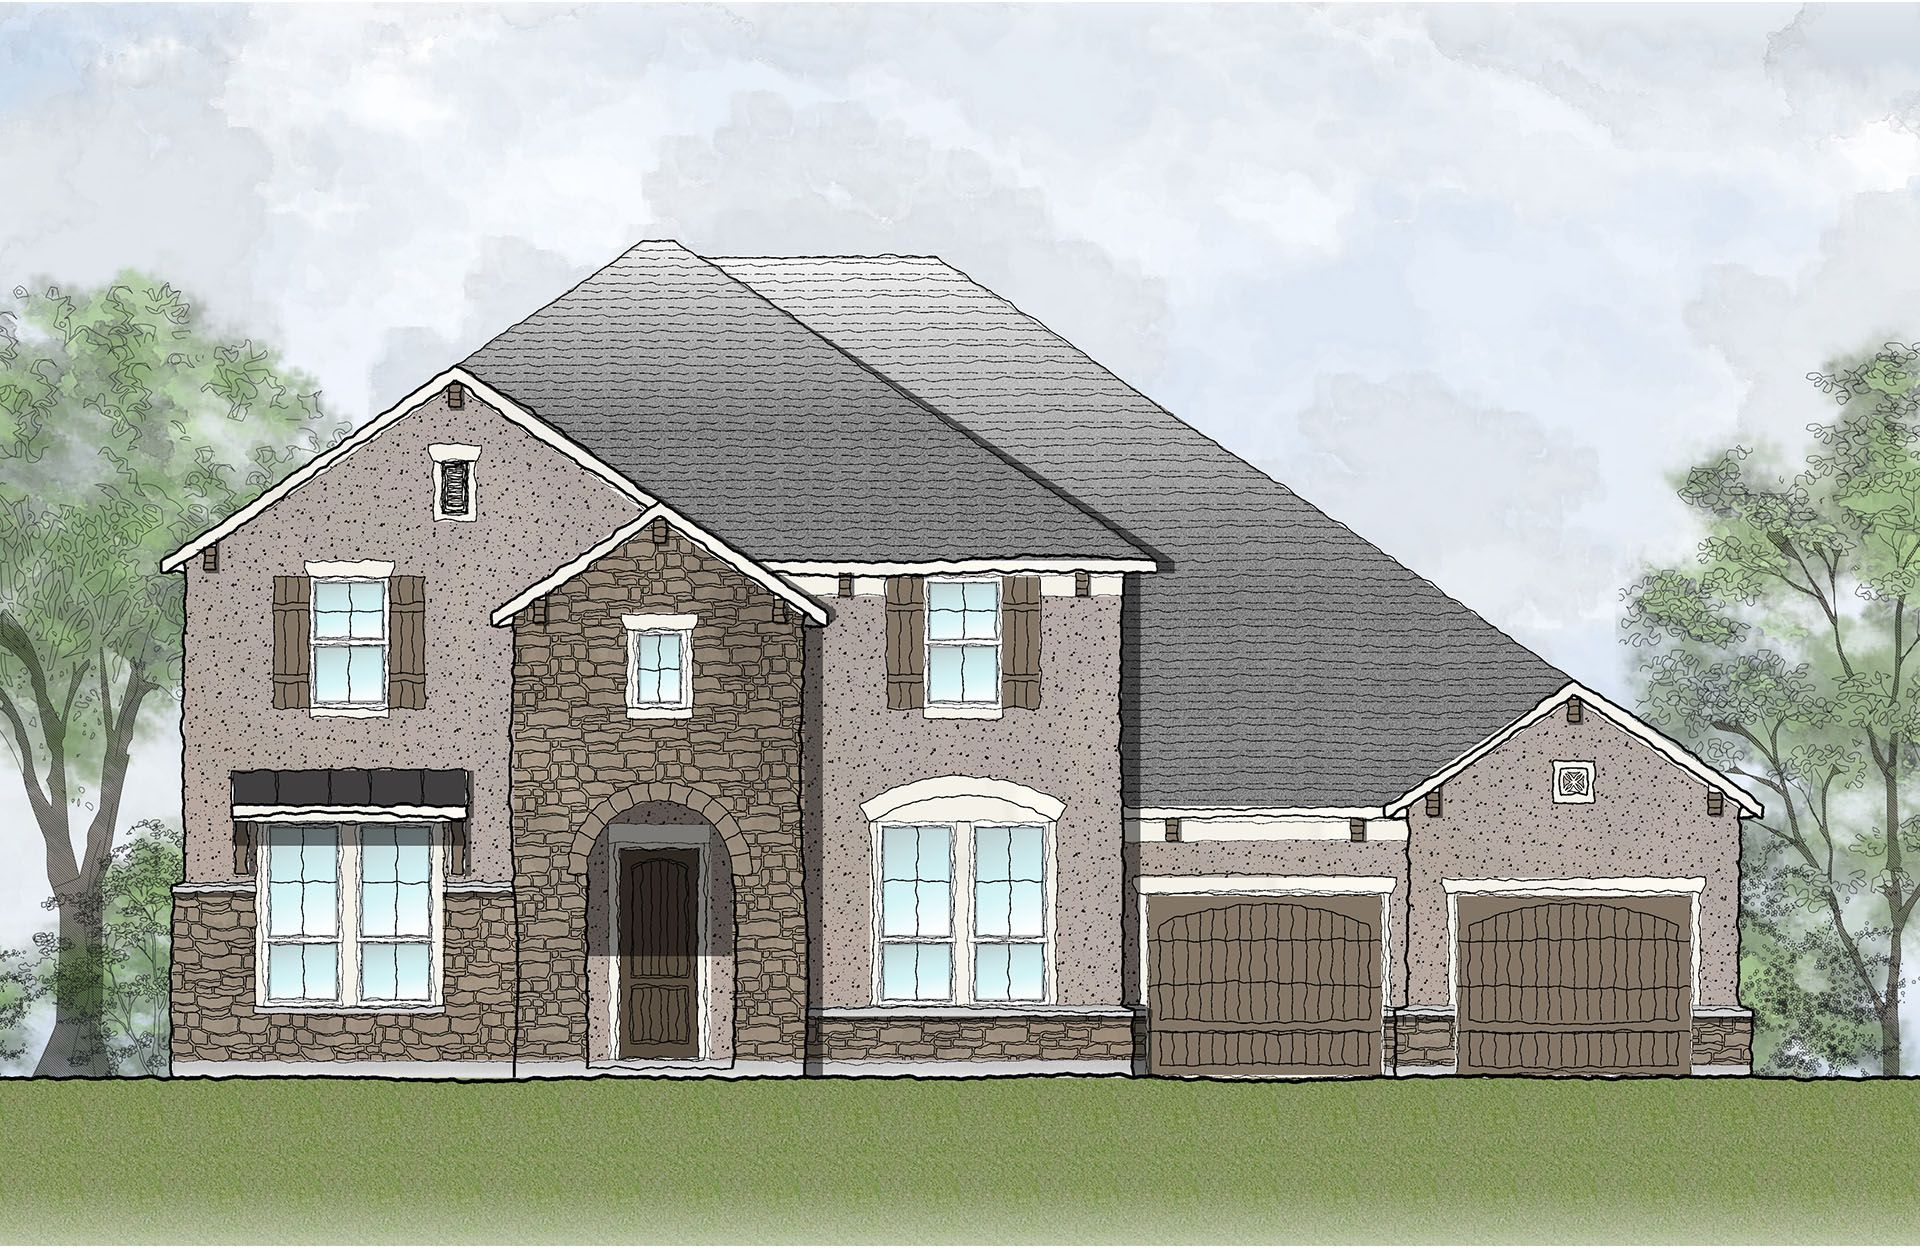 Single Family for Active at Tanner 200 Parke Wind Way Cedar Park, Texas 78613 United States